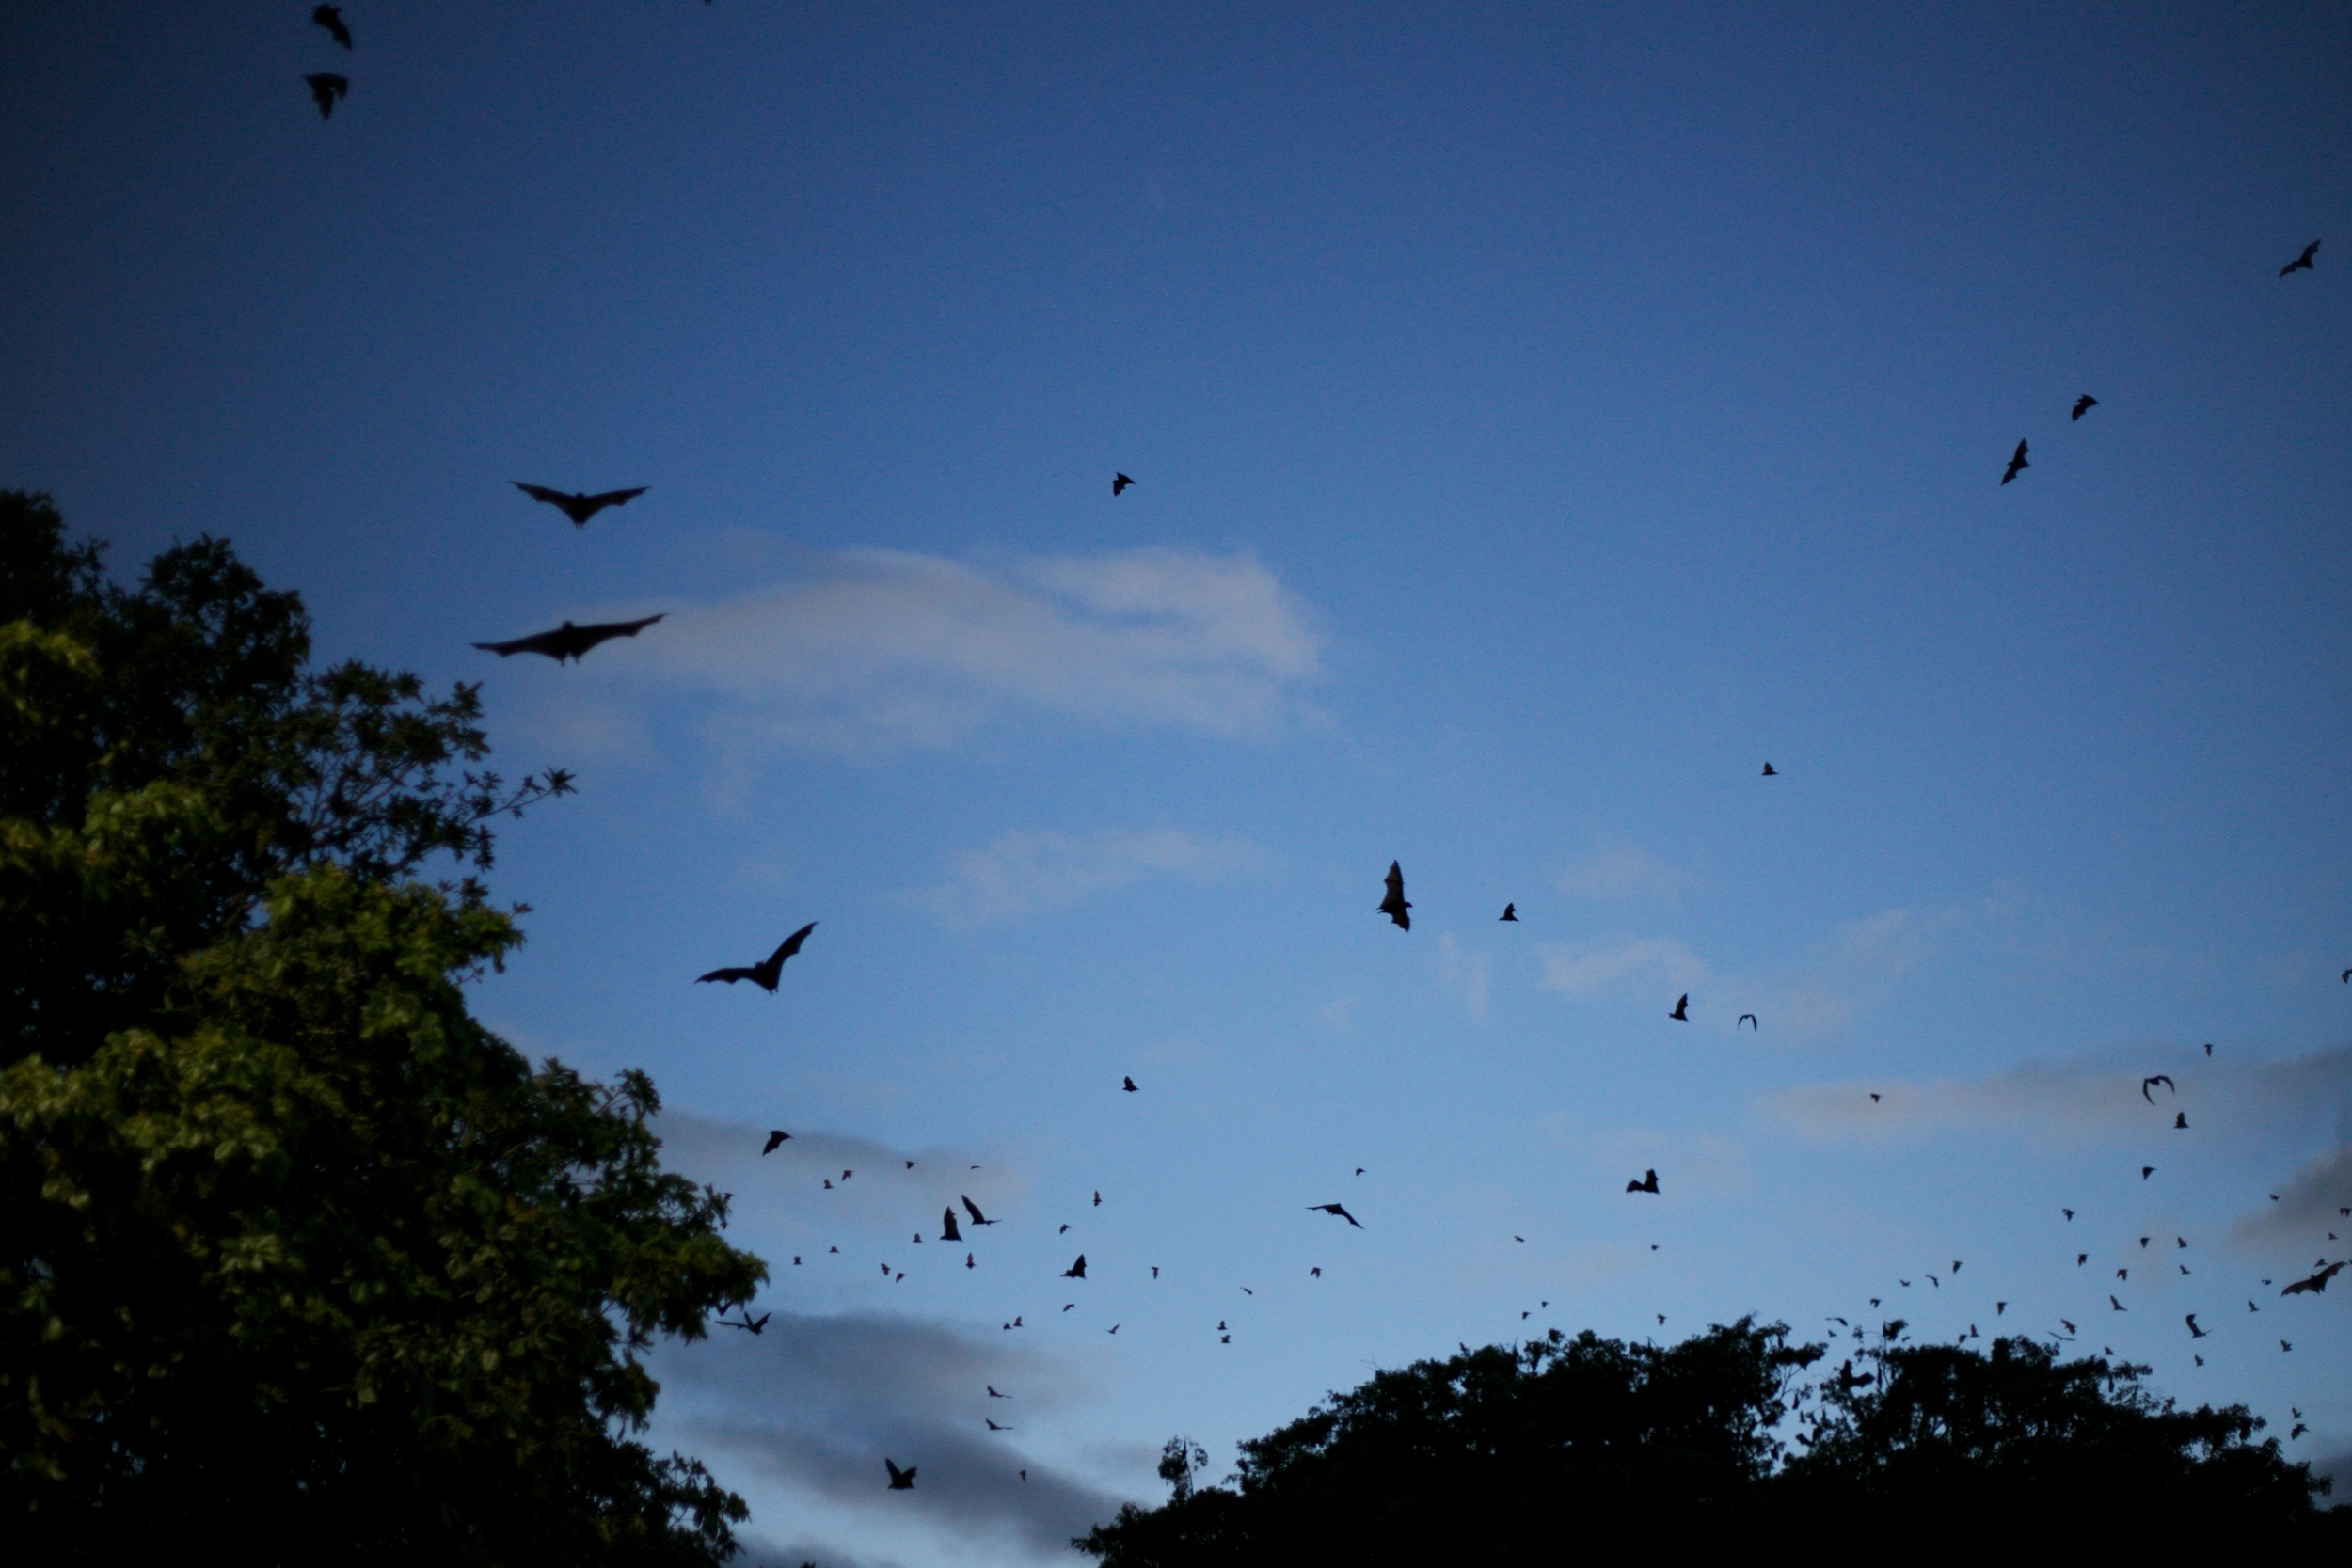 Bats flying around the city of Cannes at dusk.